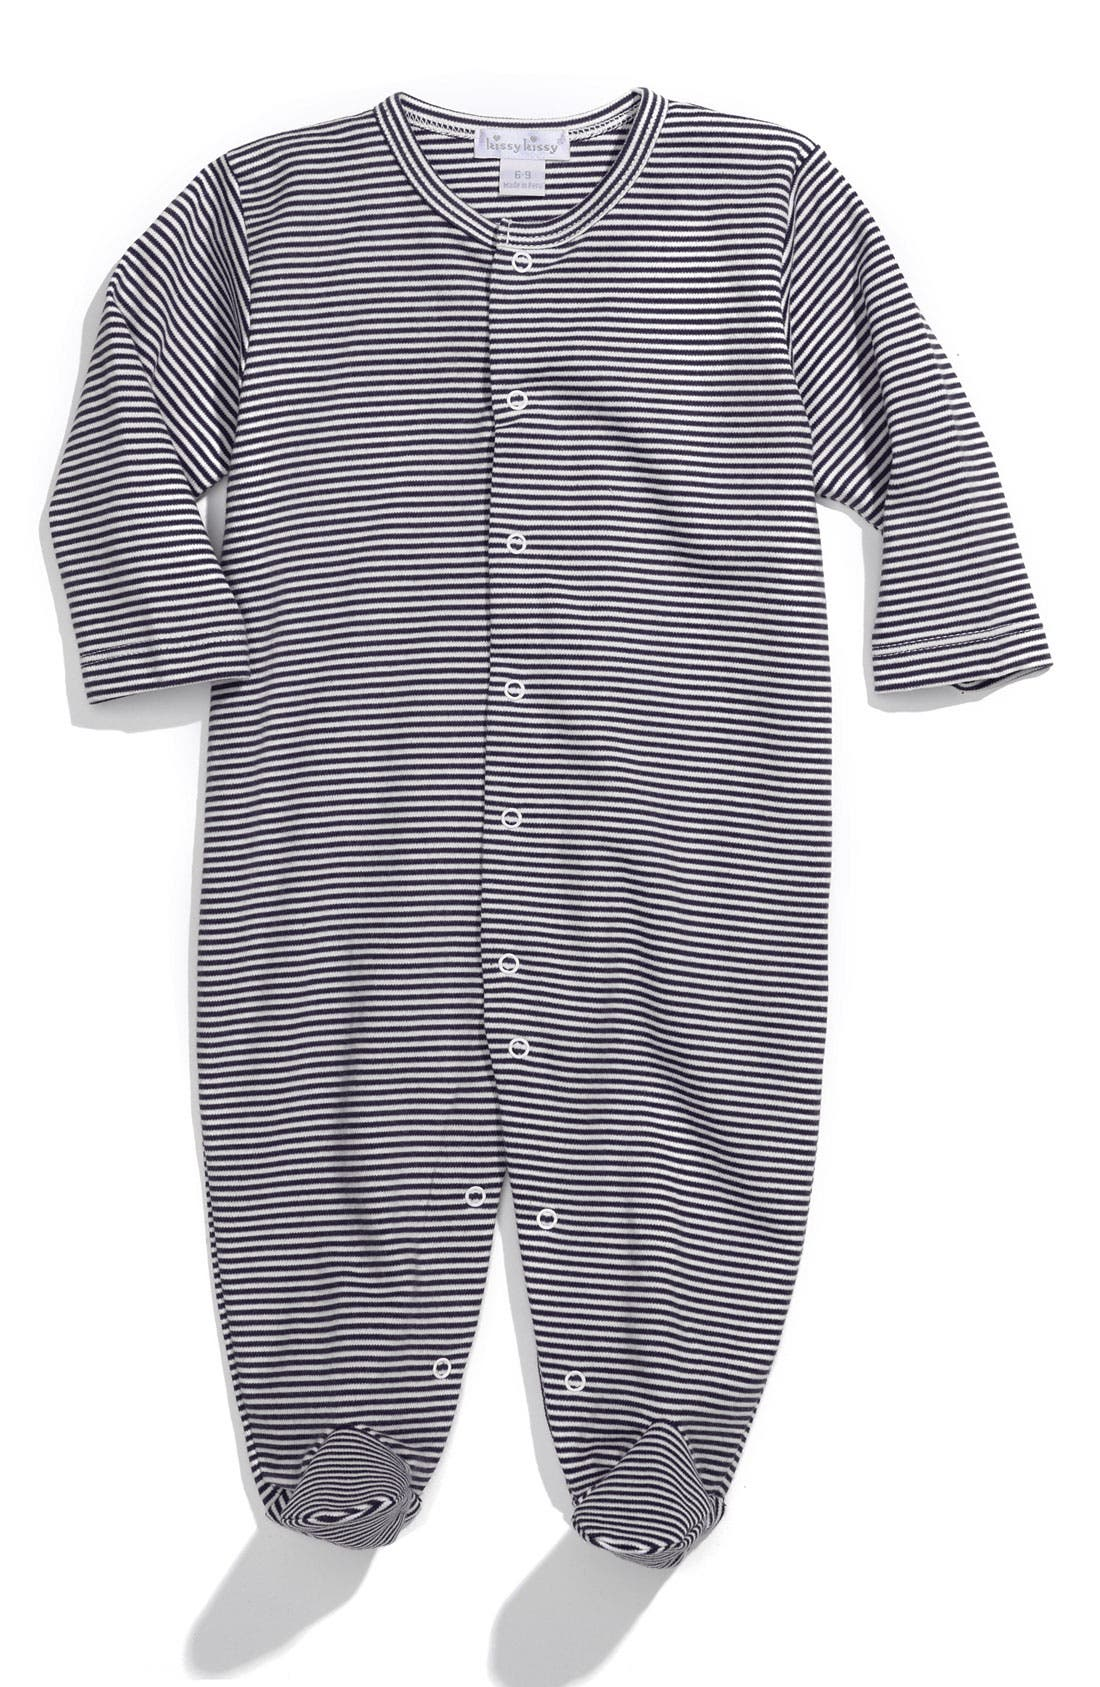 Alternate Image 1 Selected - Kissy Kissy Stripe Footie (Infant)